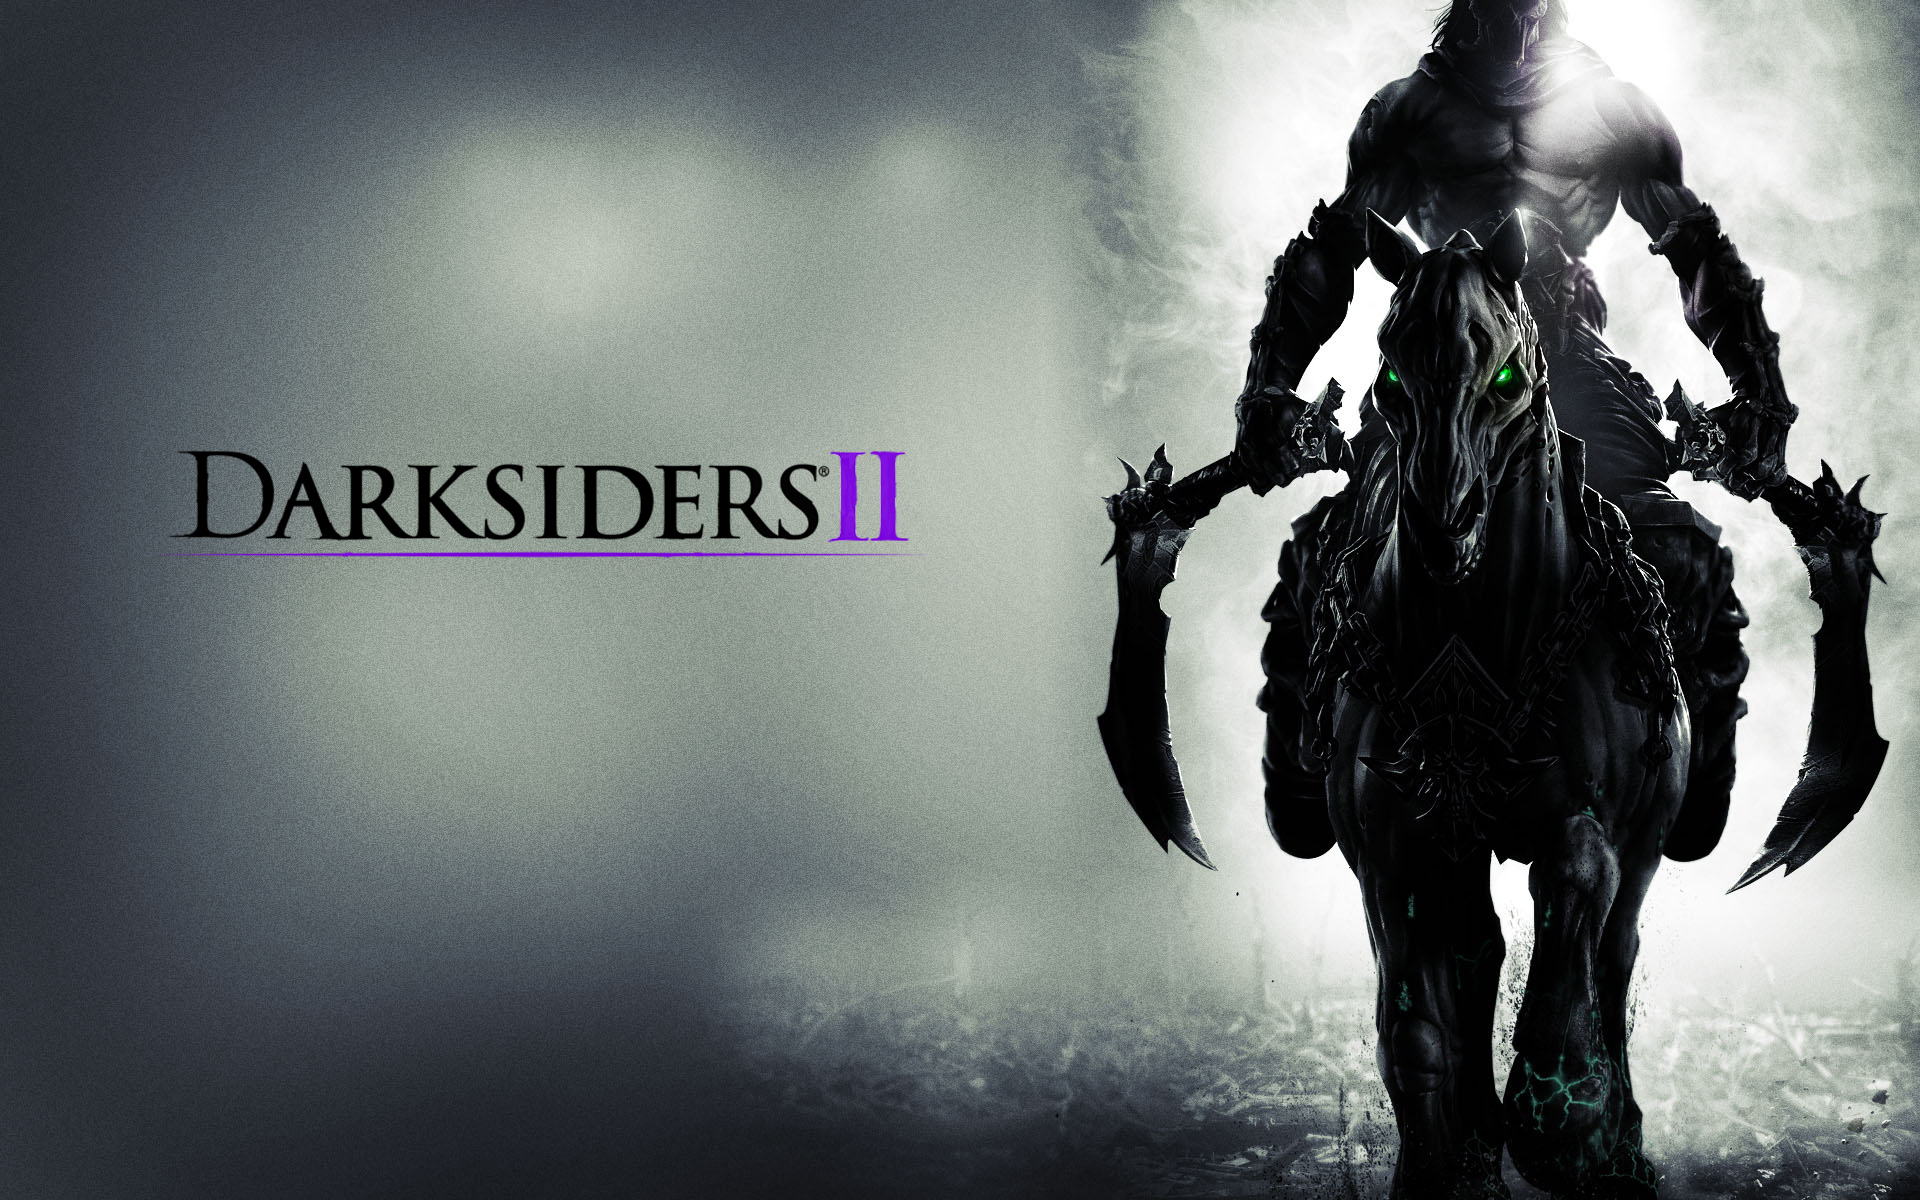 DarkSiders 2012 wallpaper